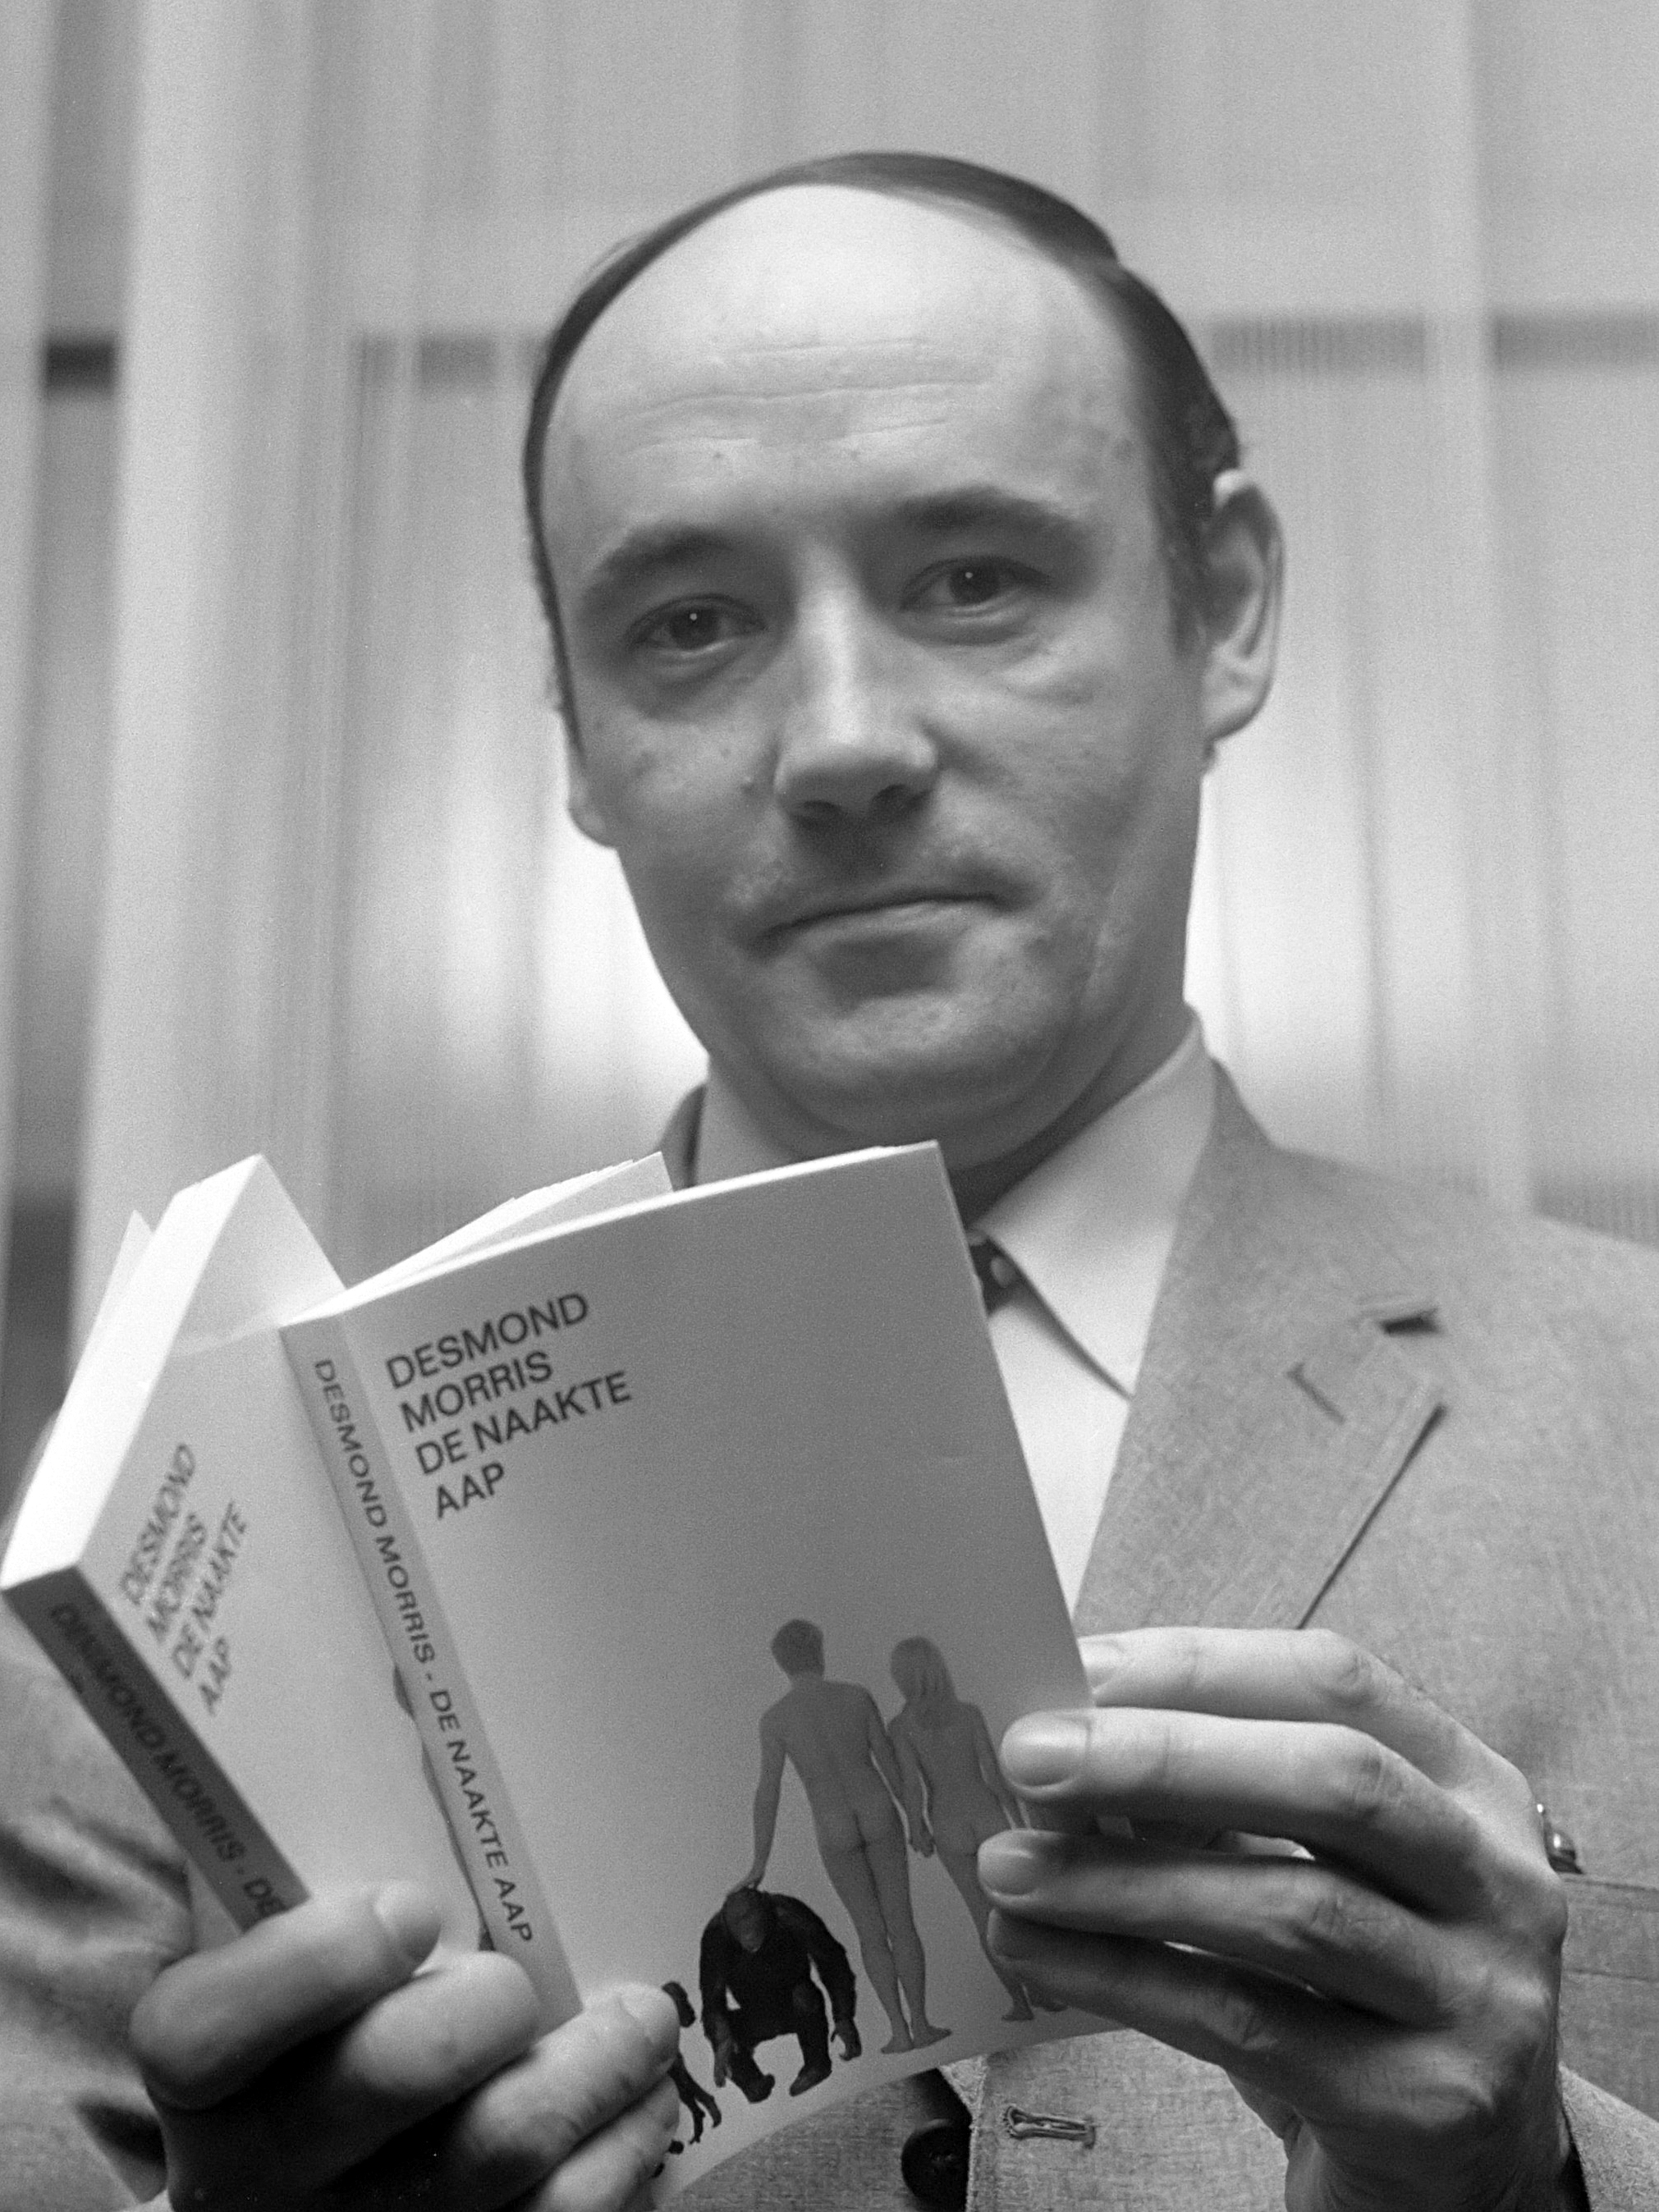 Portrait of Desmond Morris